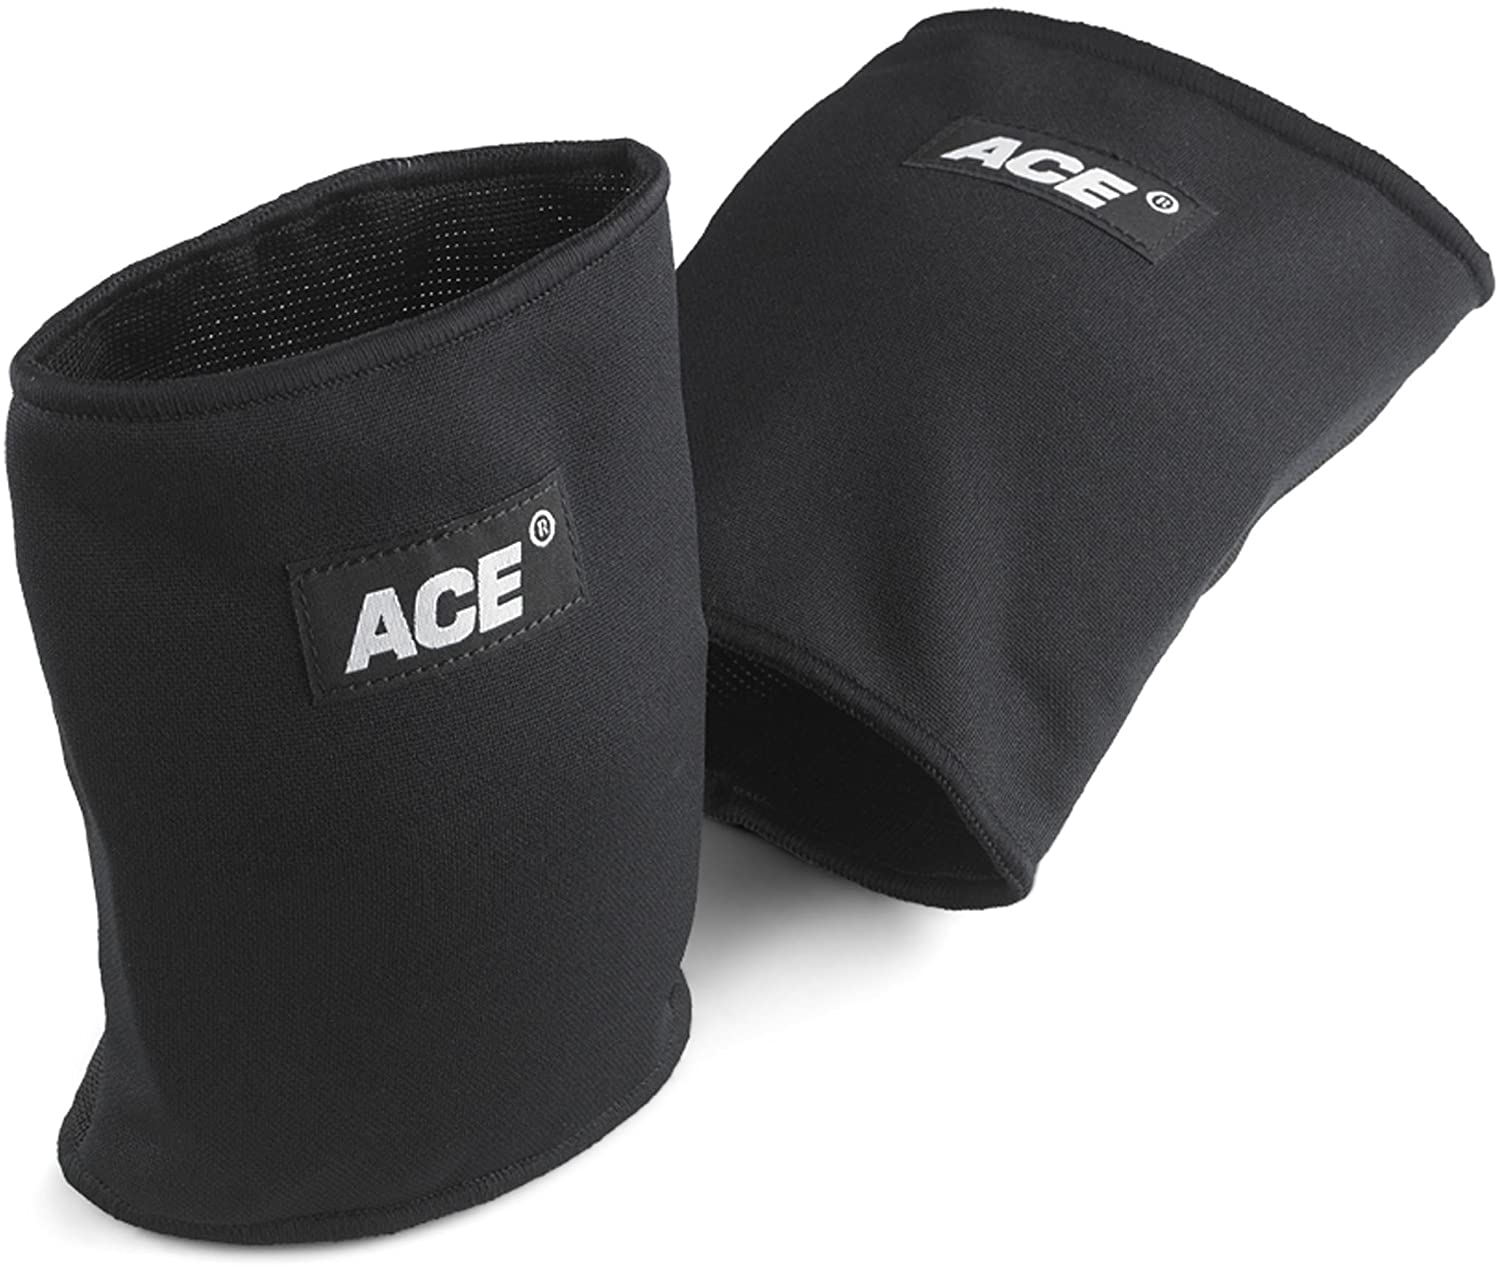 Ace Brand Knee/Elbow Pads, One Size, 0.21 Pound